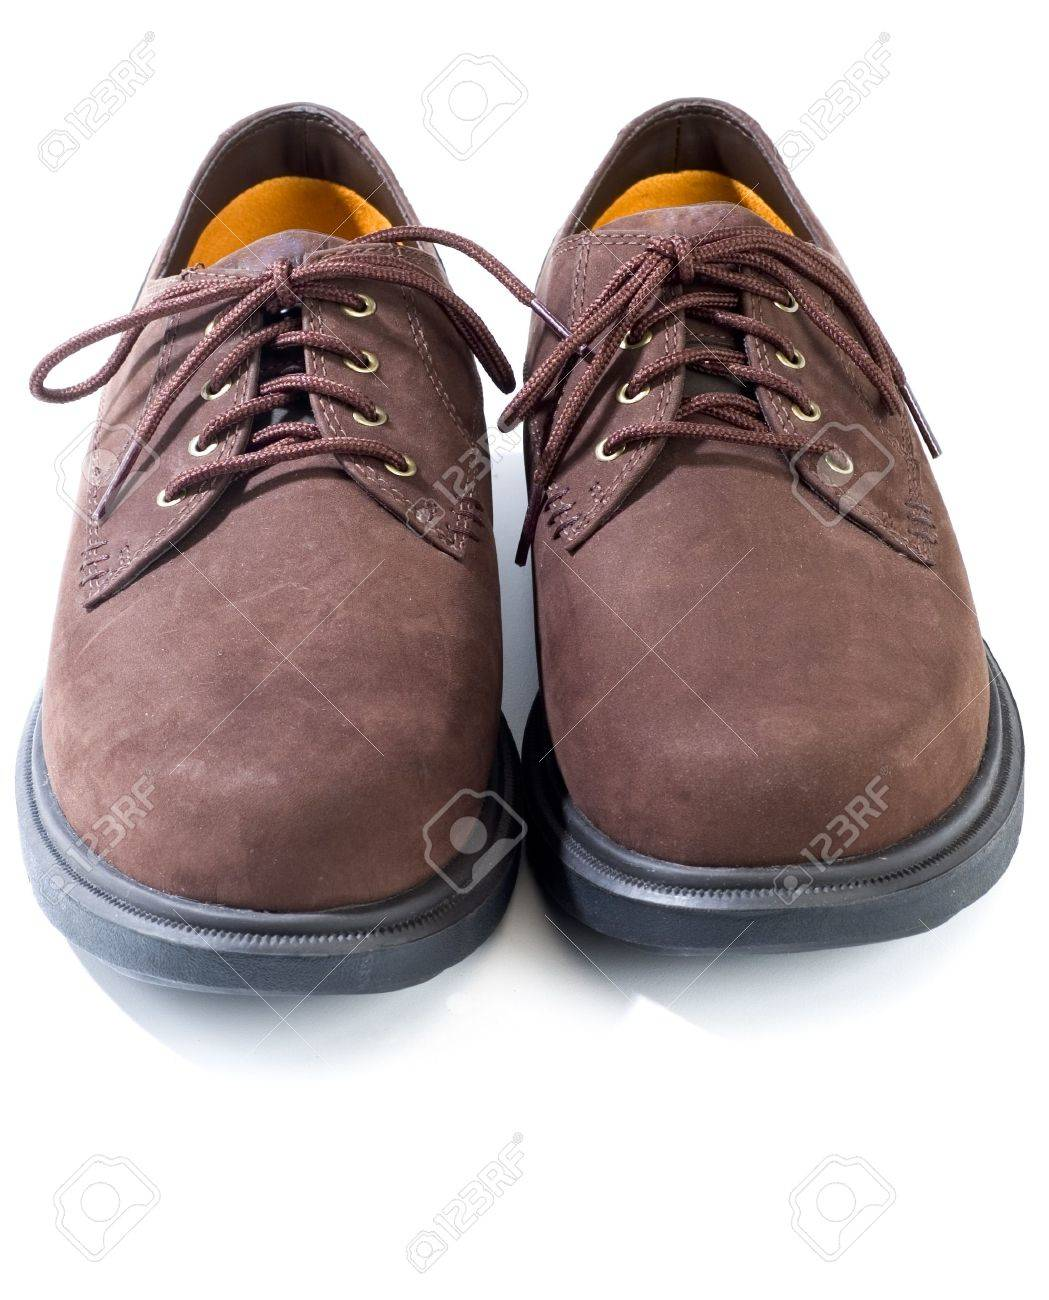 Rugged Casual Shoes In Brown Suede On